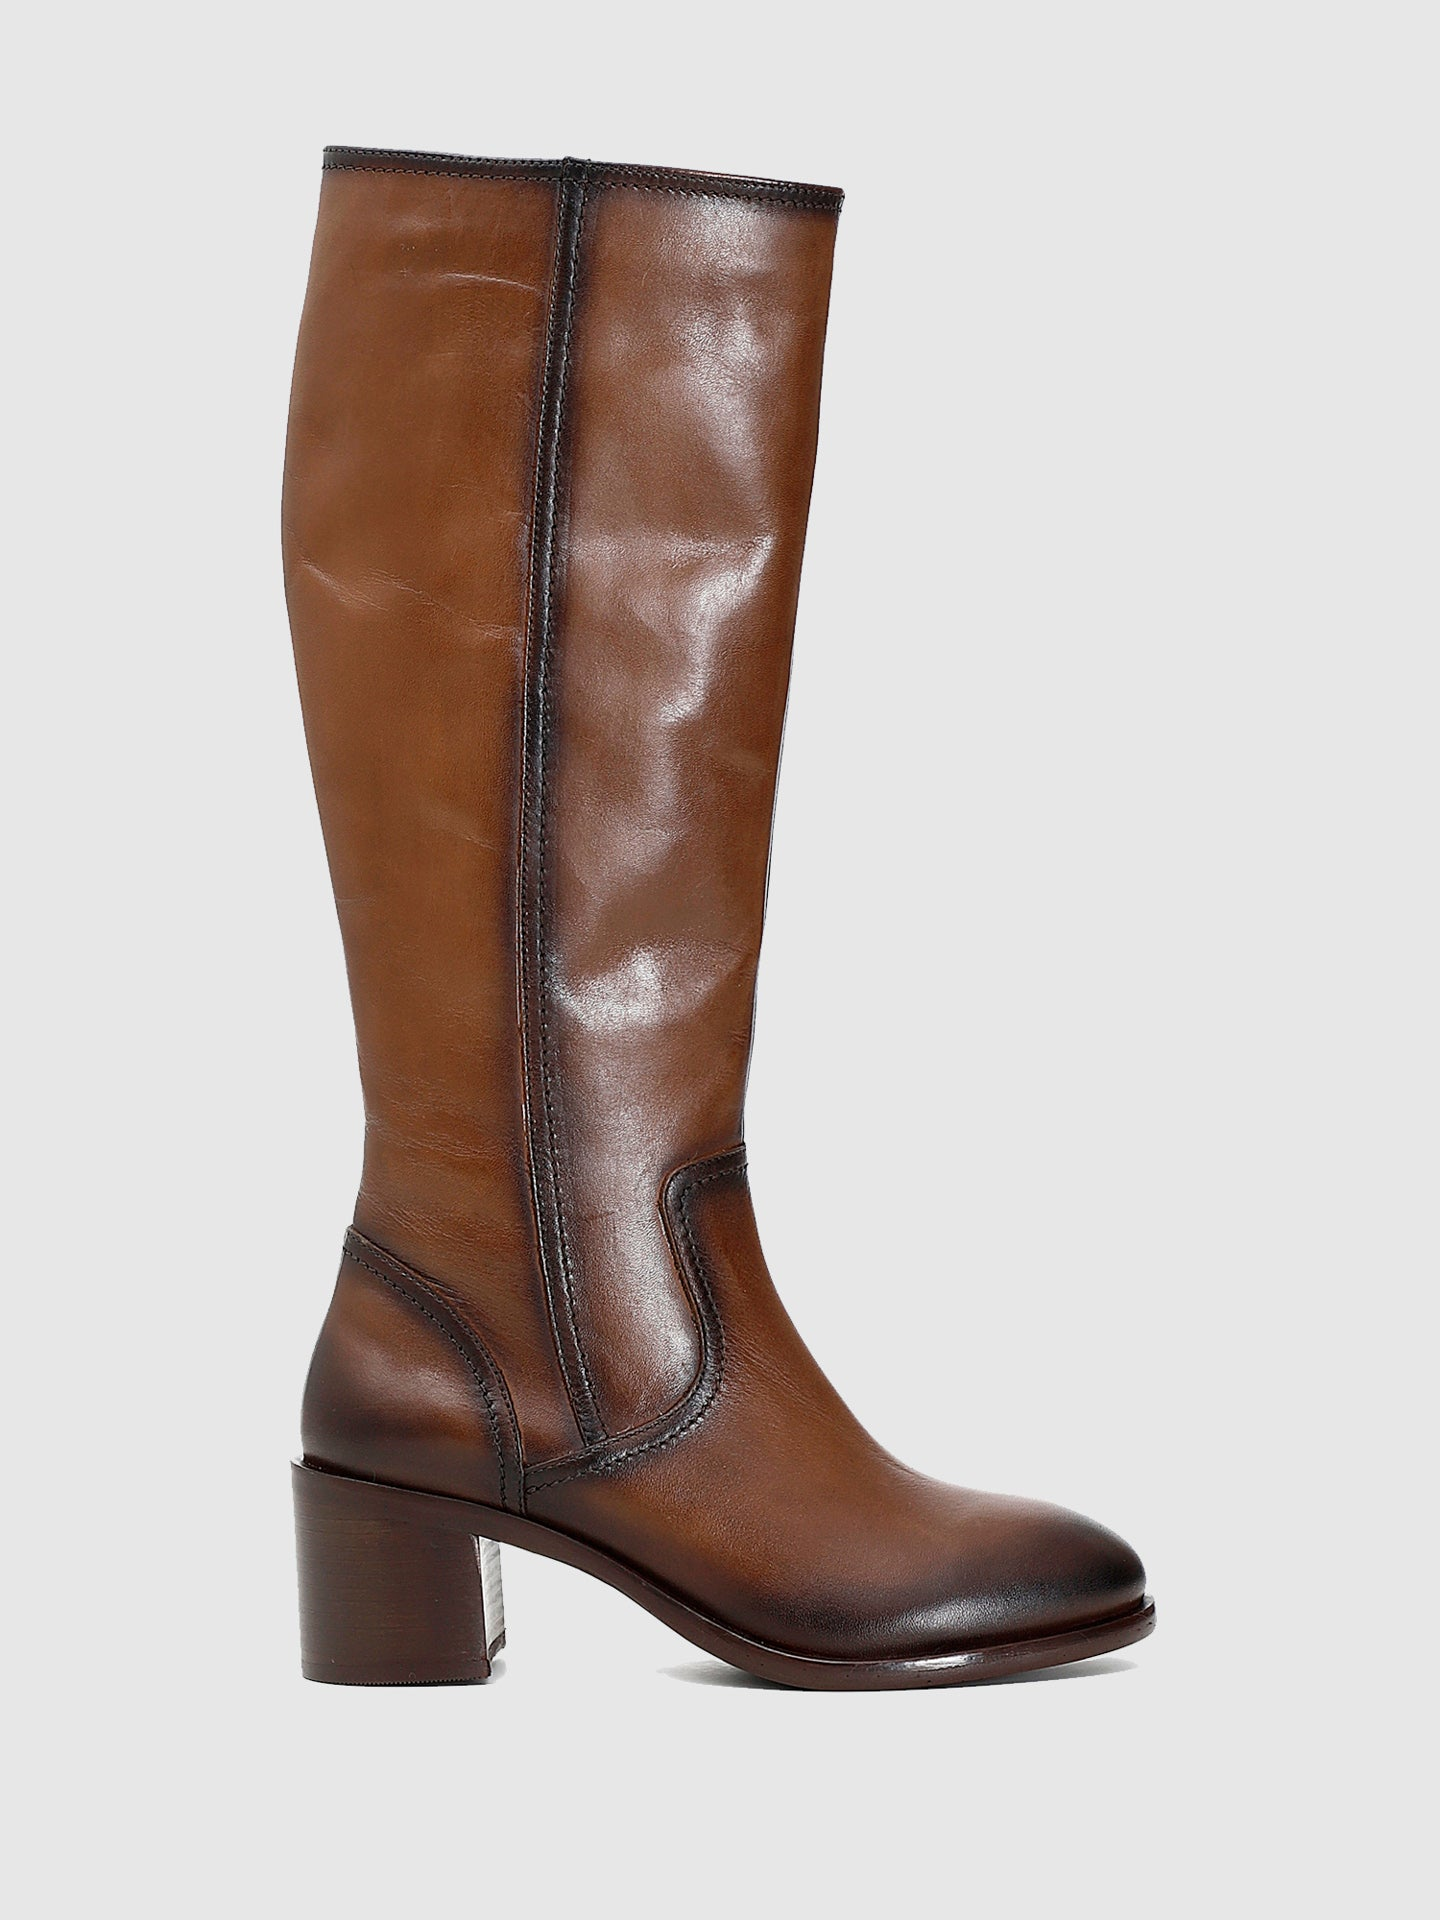 Cafè Noir Brown Zip Up Boots